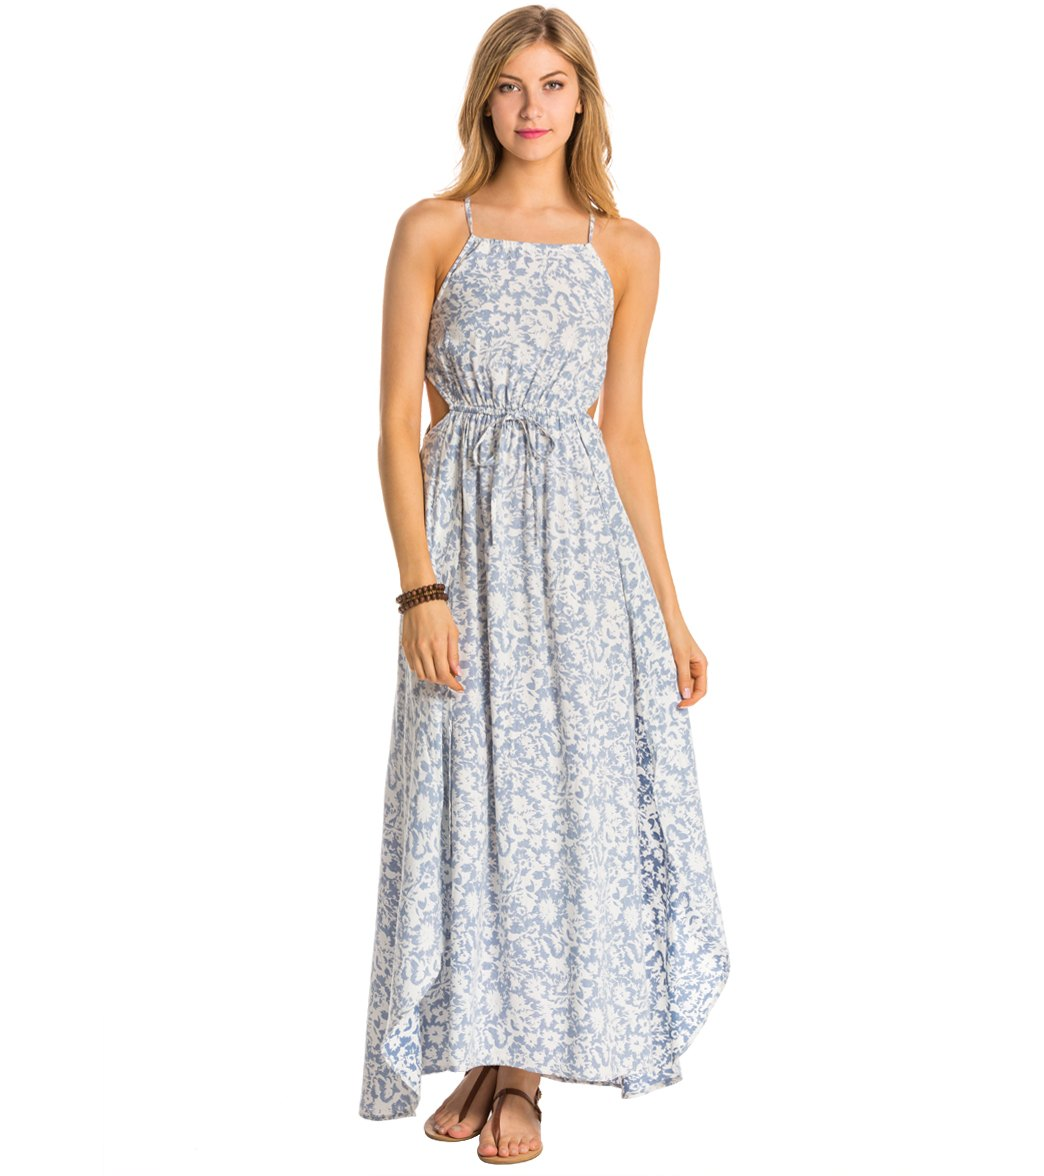 19dc4303d685 Billabong Sounds Of The Sea Maxi Dress at SwimOutlet.com - Free ...